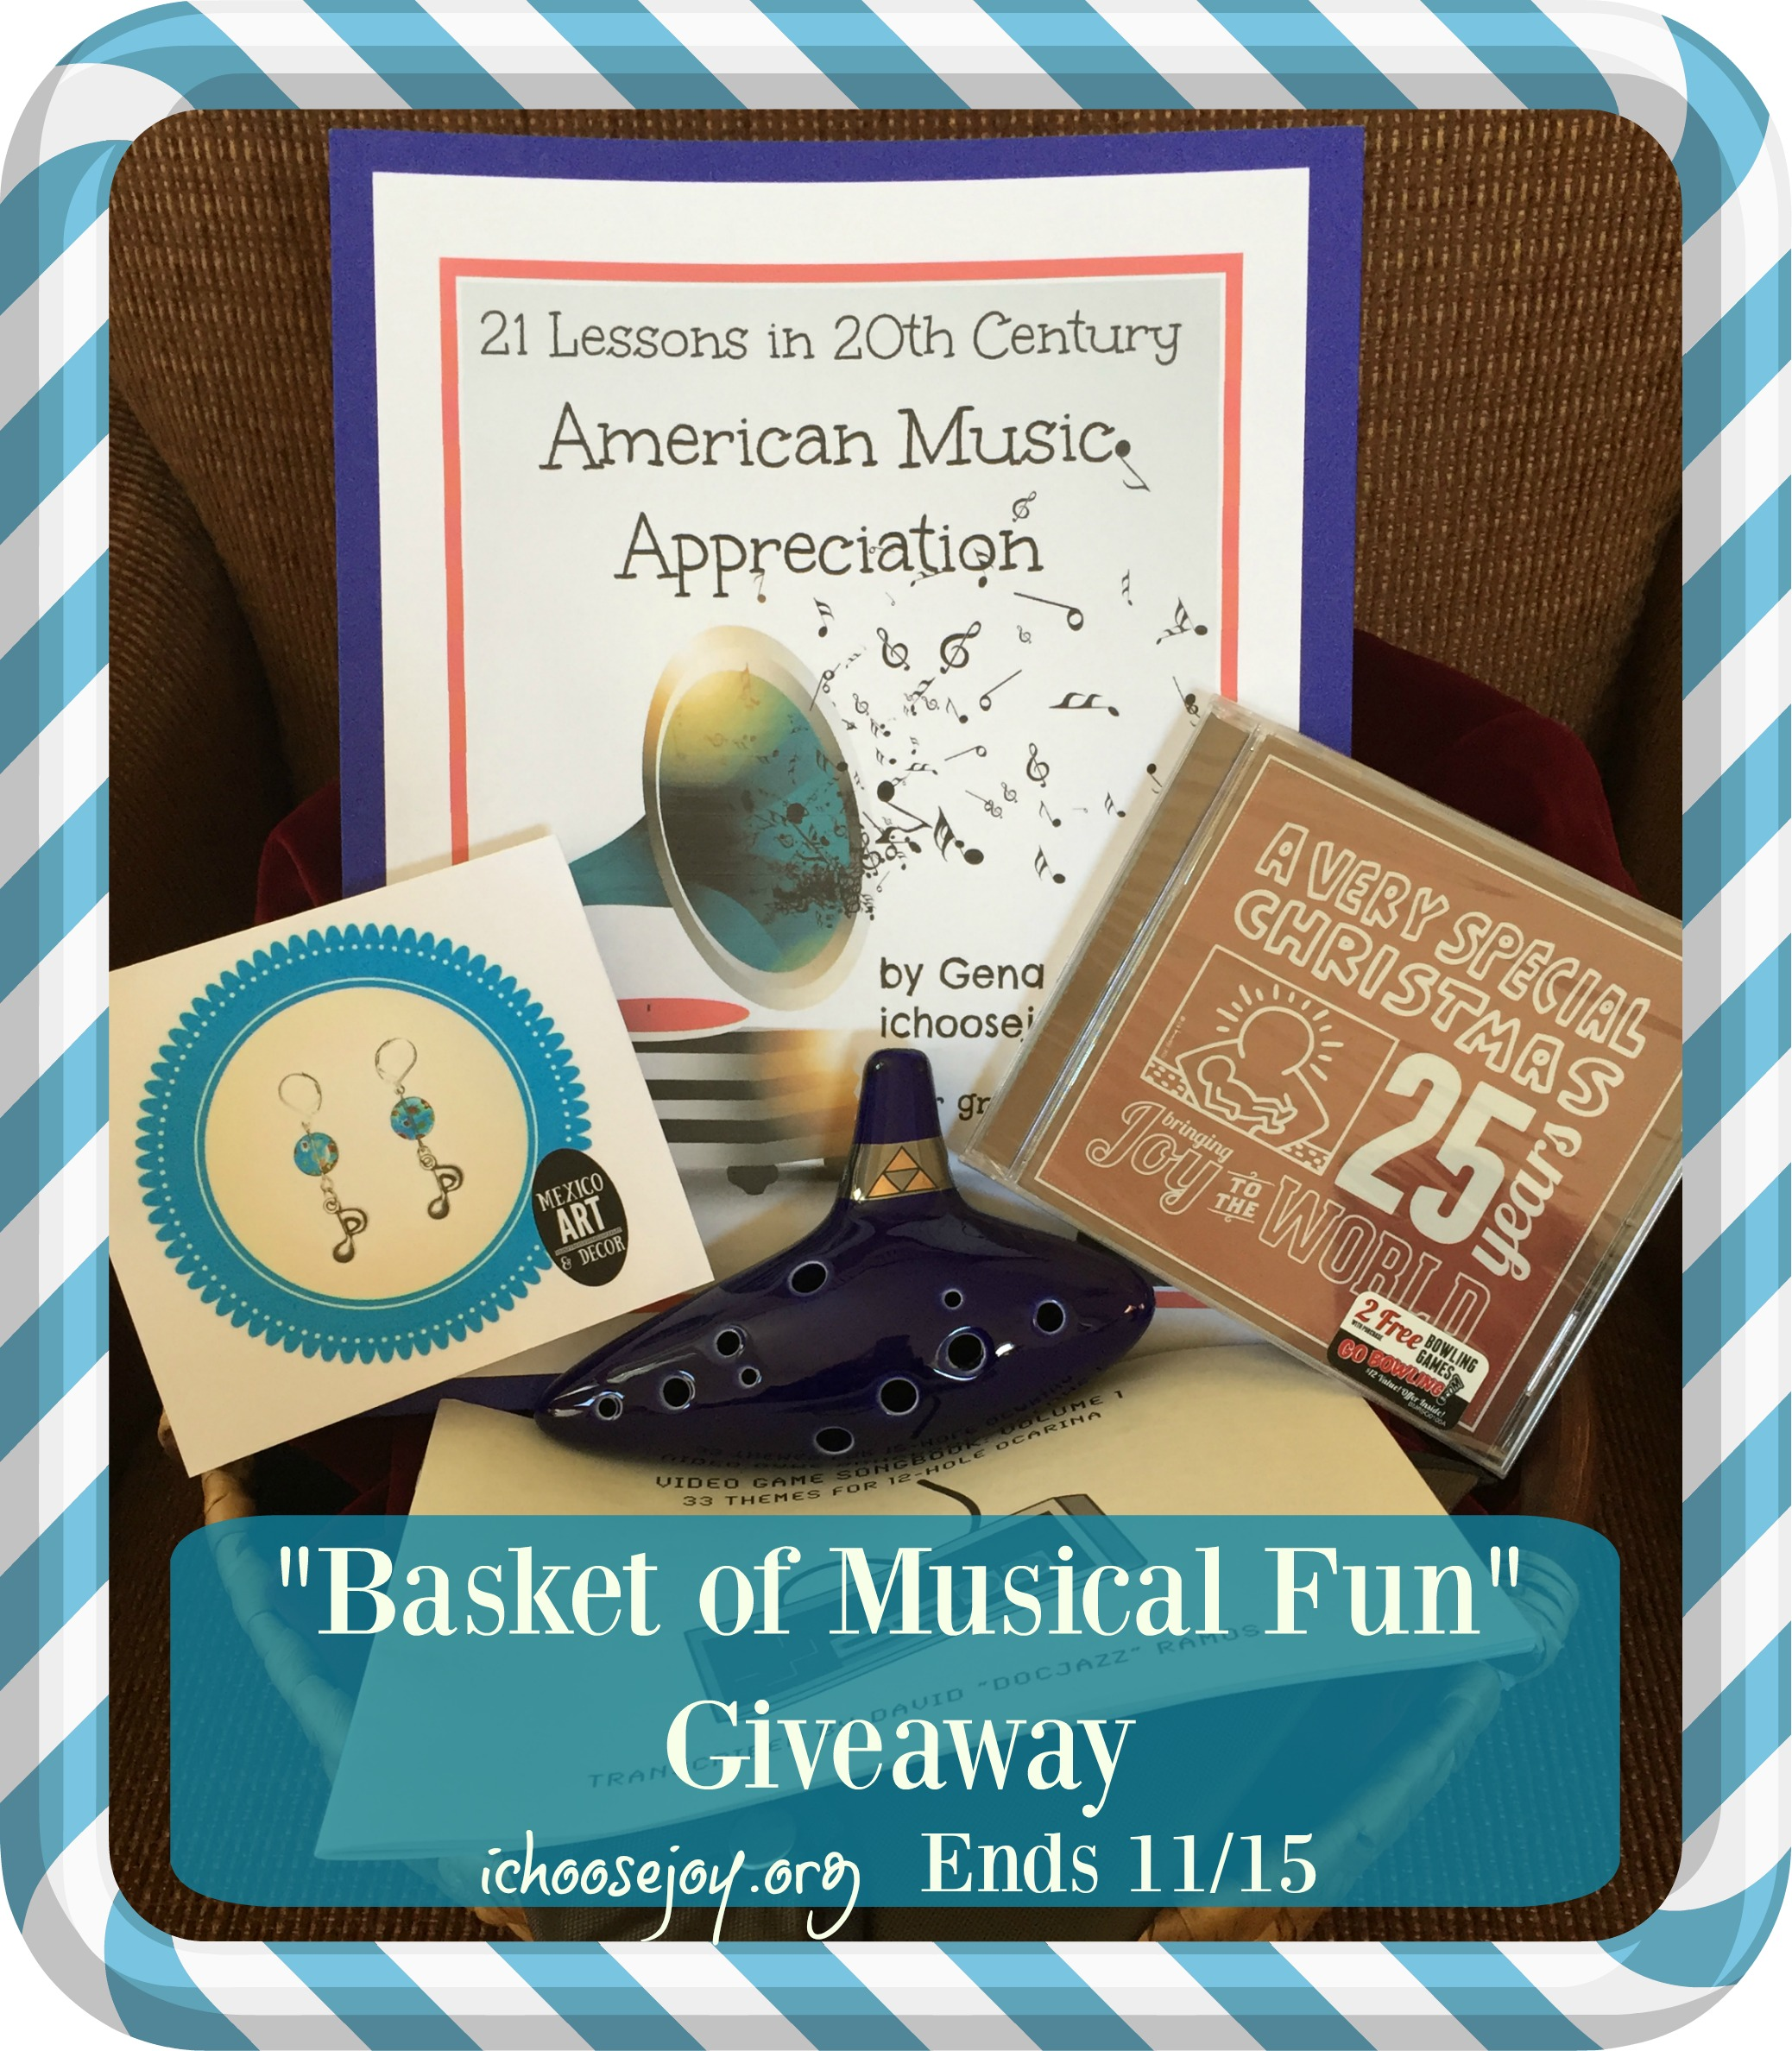 Basket-of-Musical-Fun-Giveaway-ends-Nov.-15